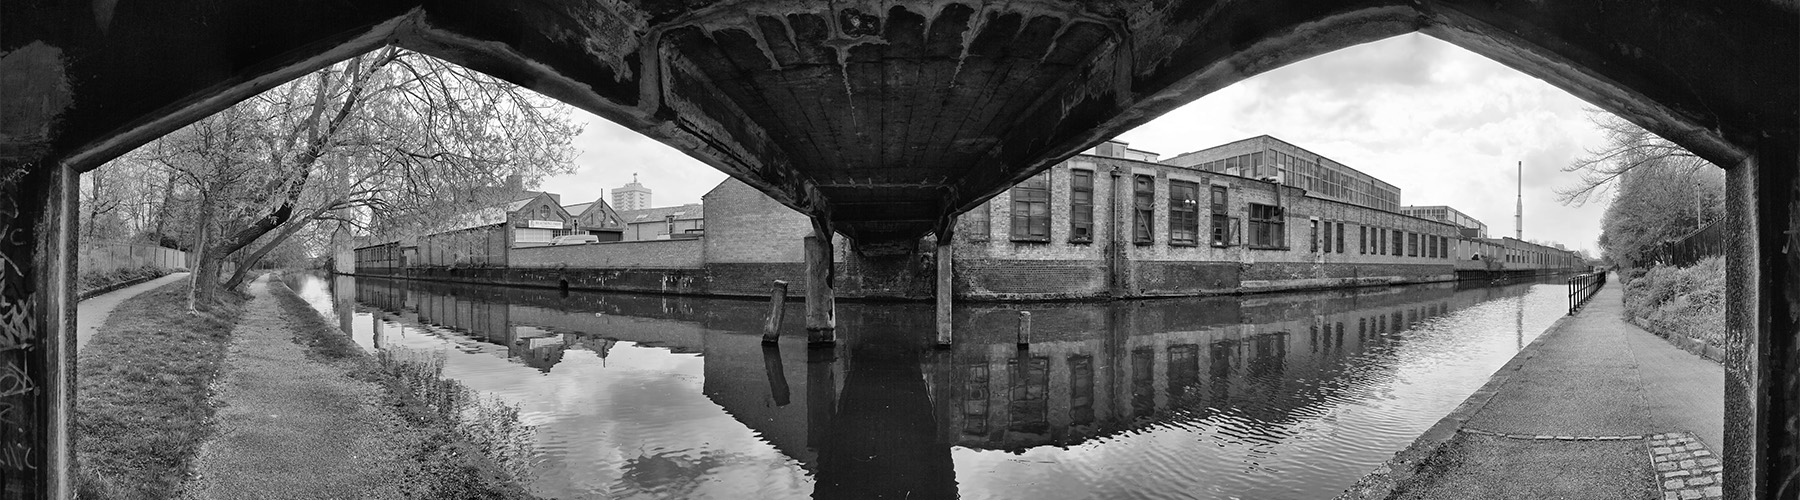 Industrial landscape - canal in Leicester